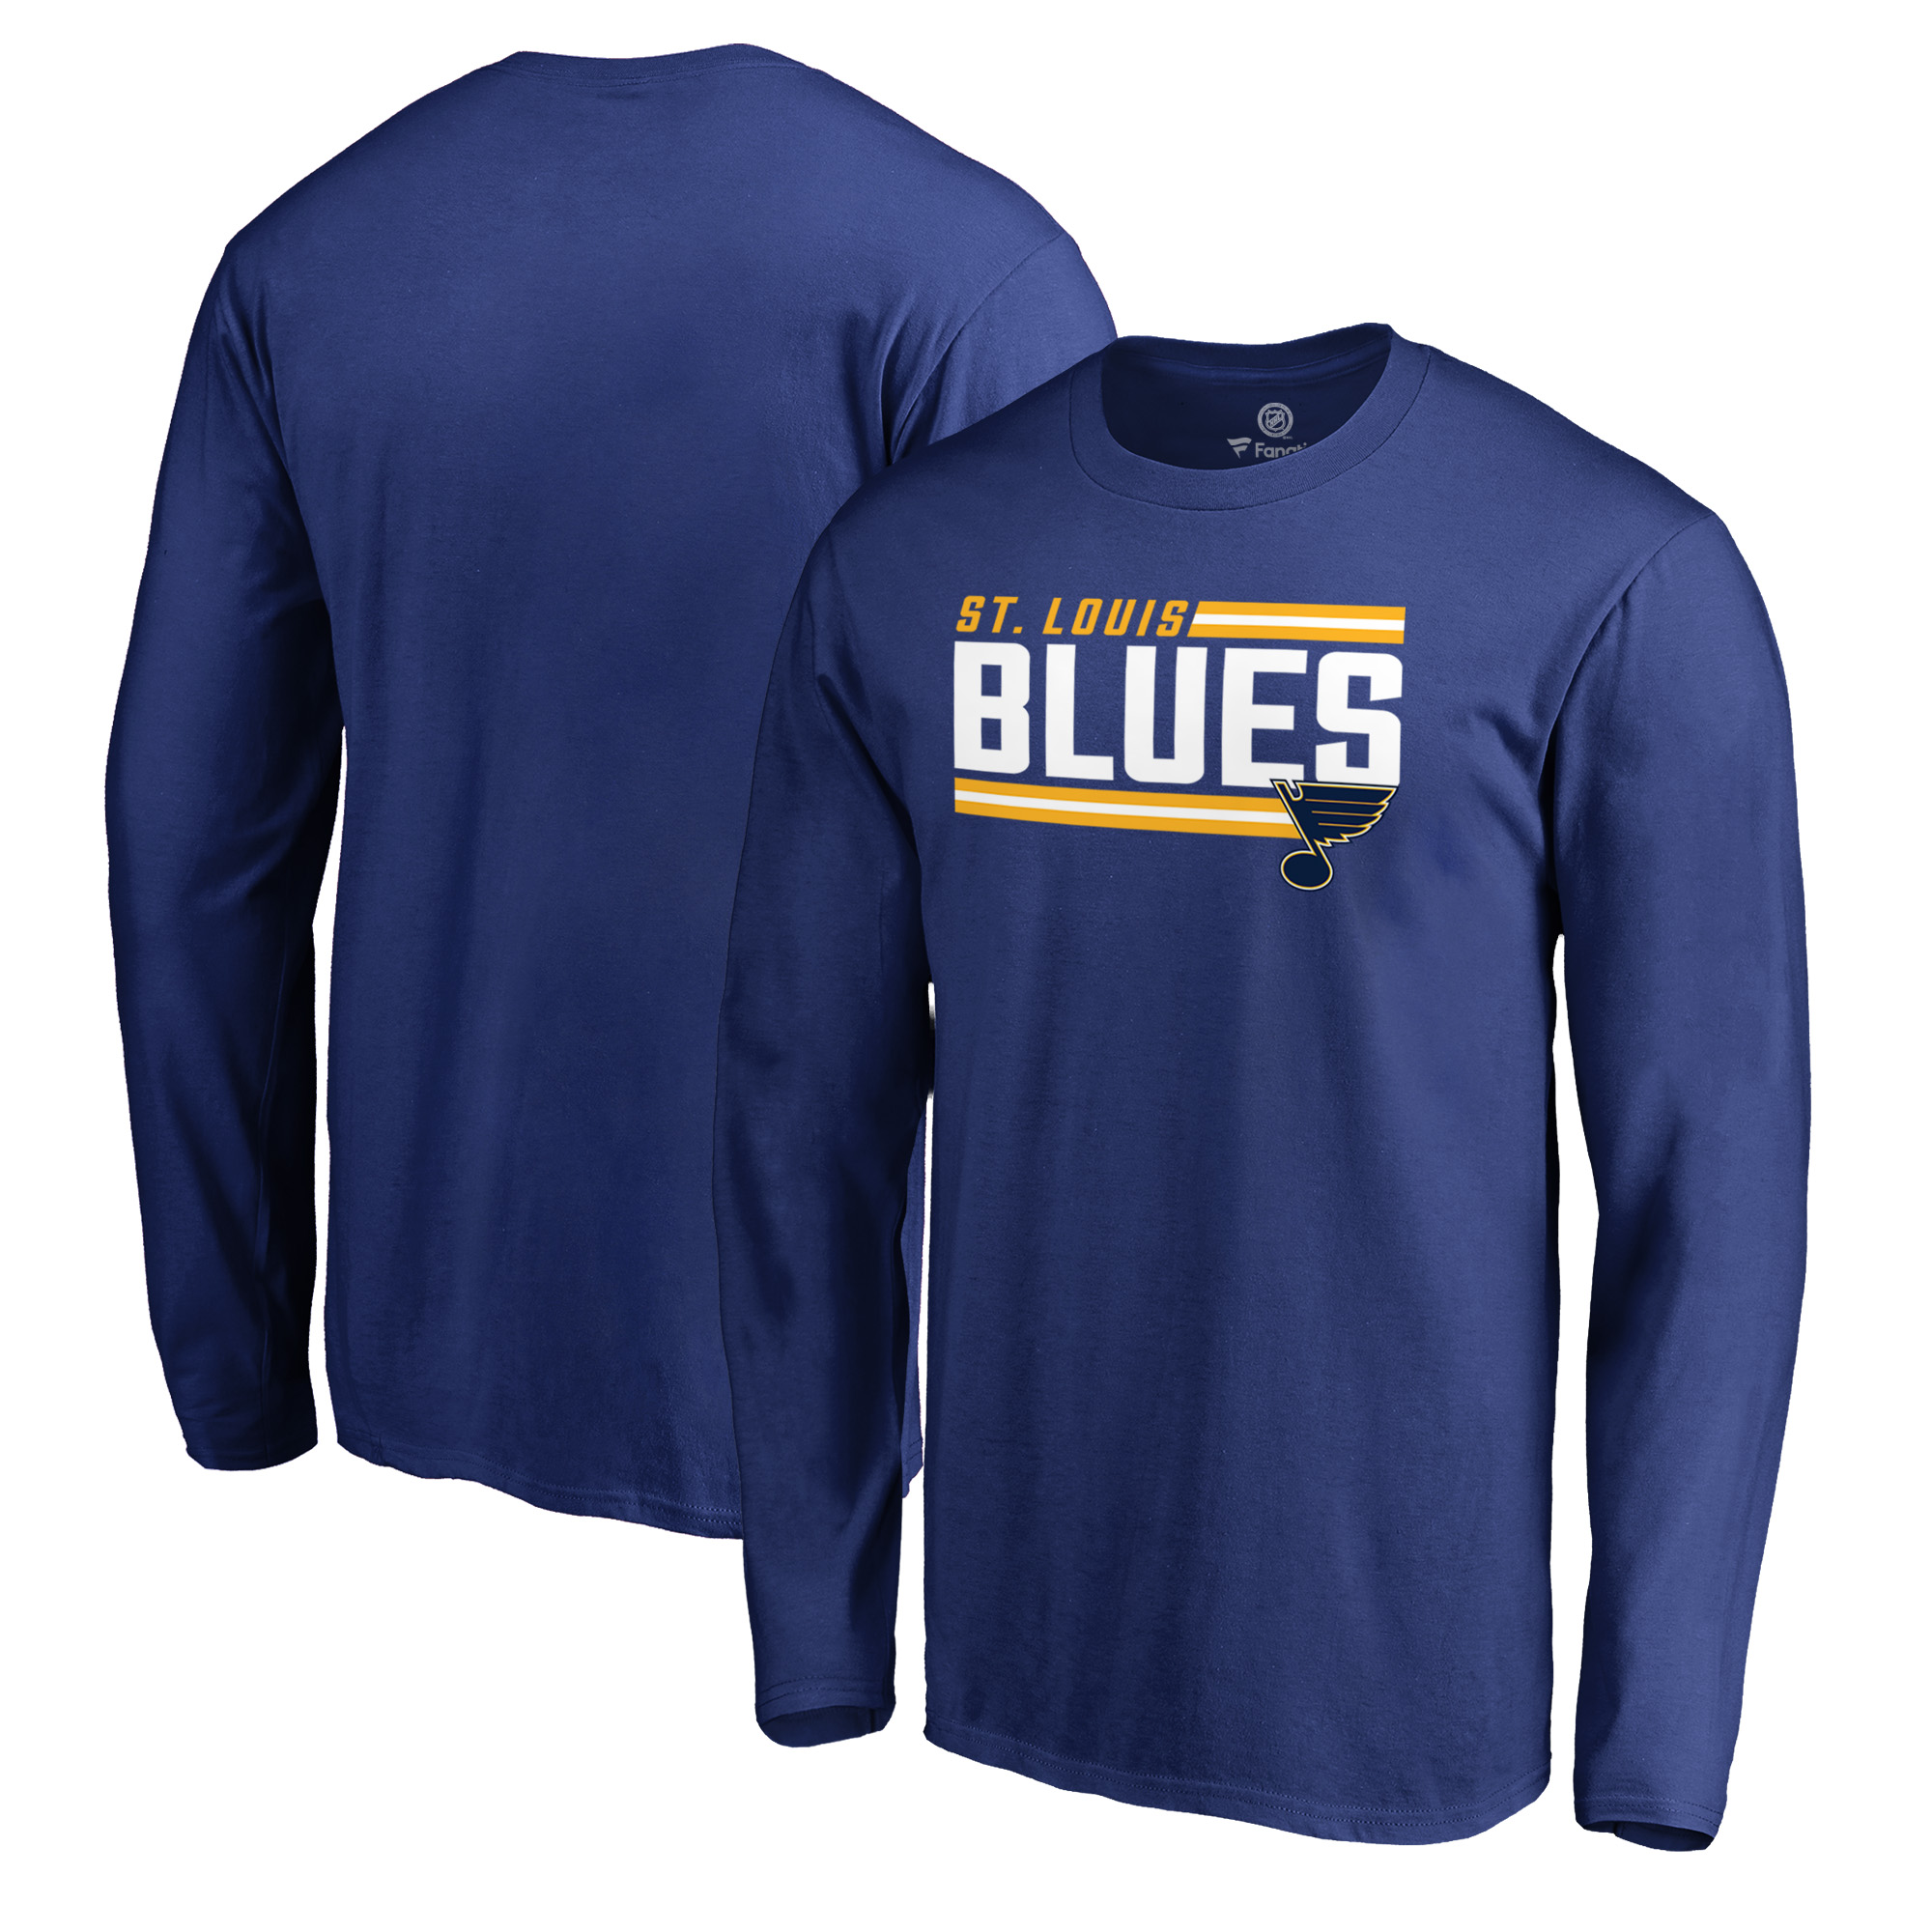 St. Louis Blues Fanatics Branded Iconic Collection On Side Stripe Long Sleeve T-Shirt - Royal